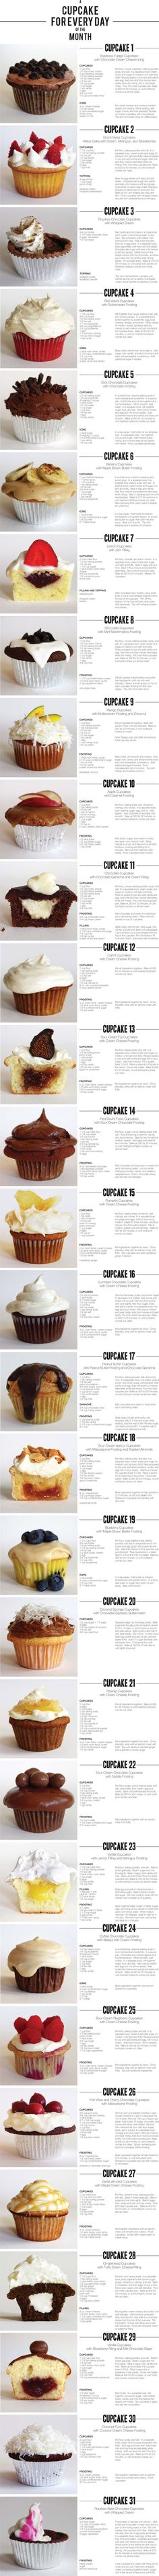 a cupcake for every day of the month! YES!!!